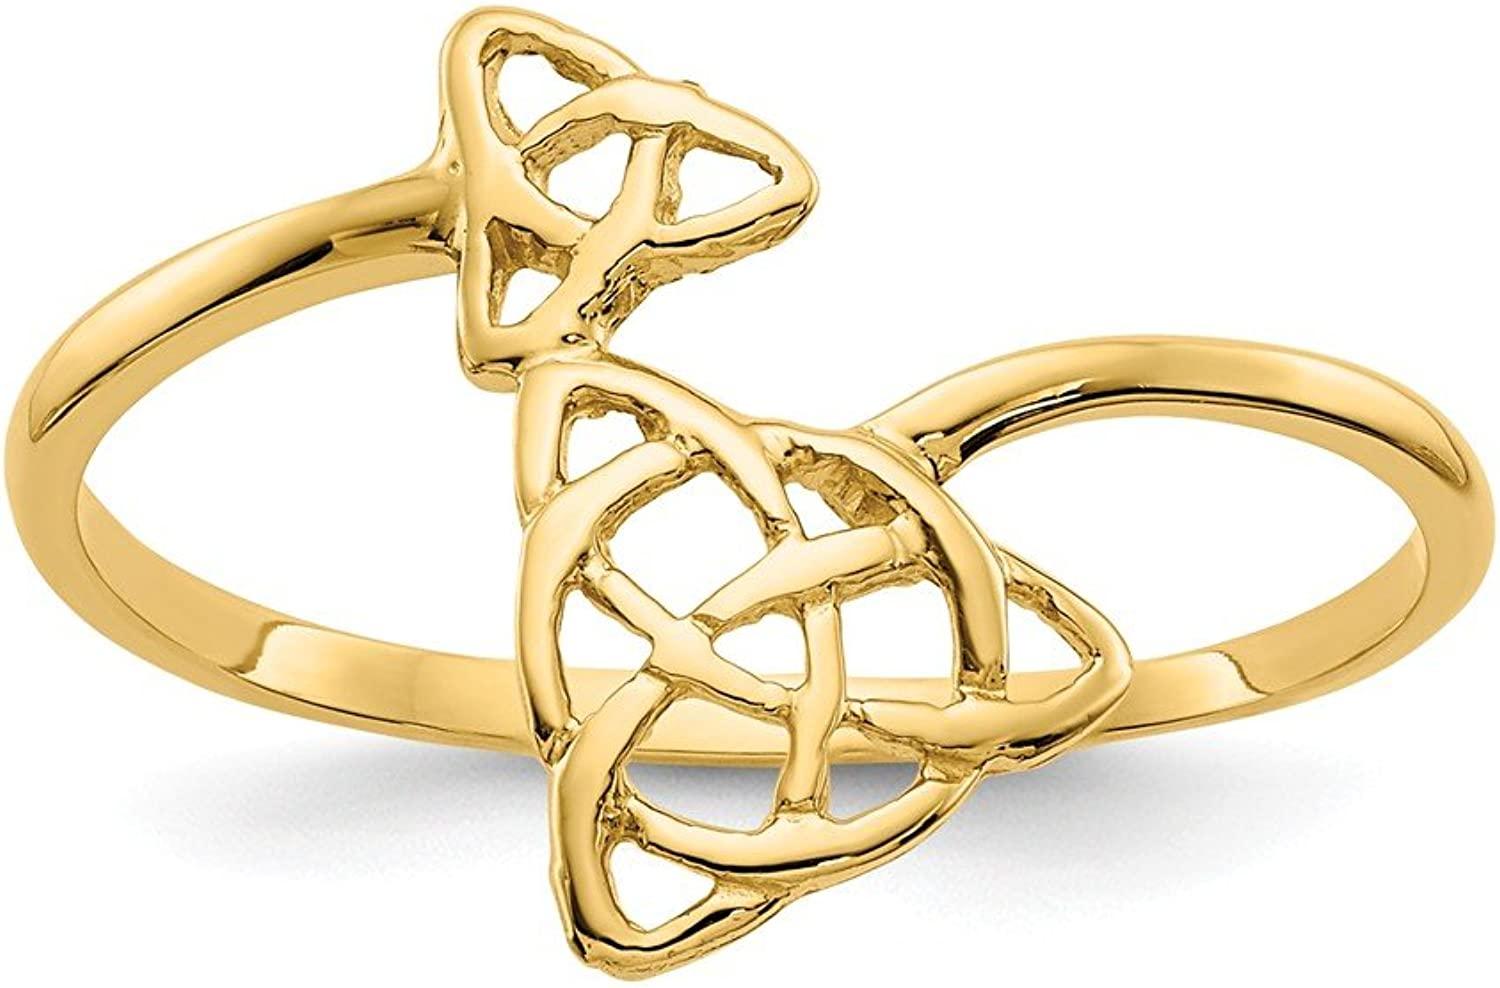 Yellowgold 14k Polished Celtic Knot Ring